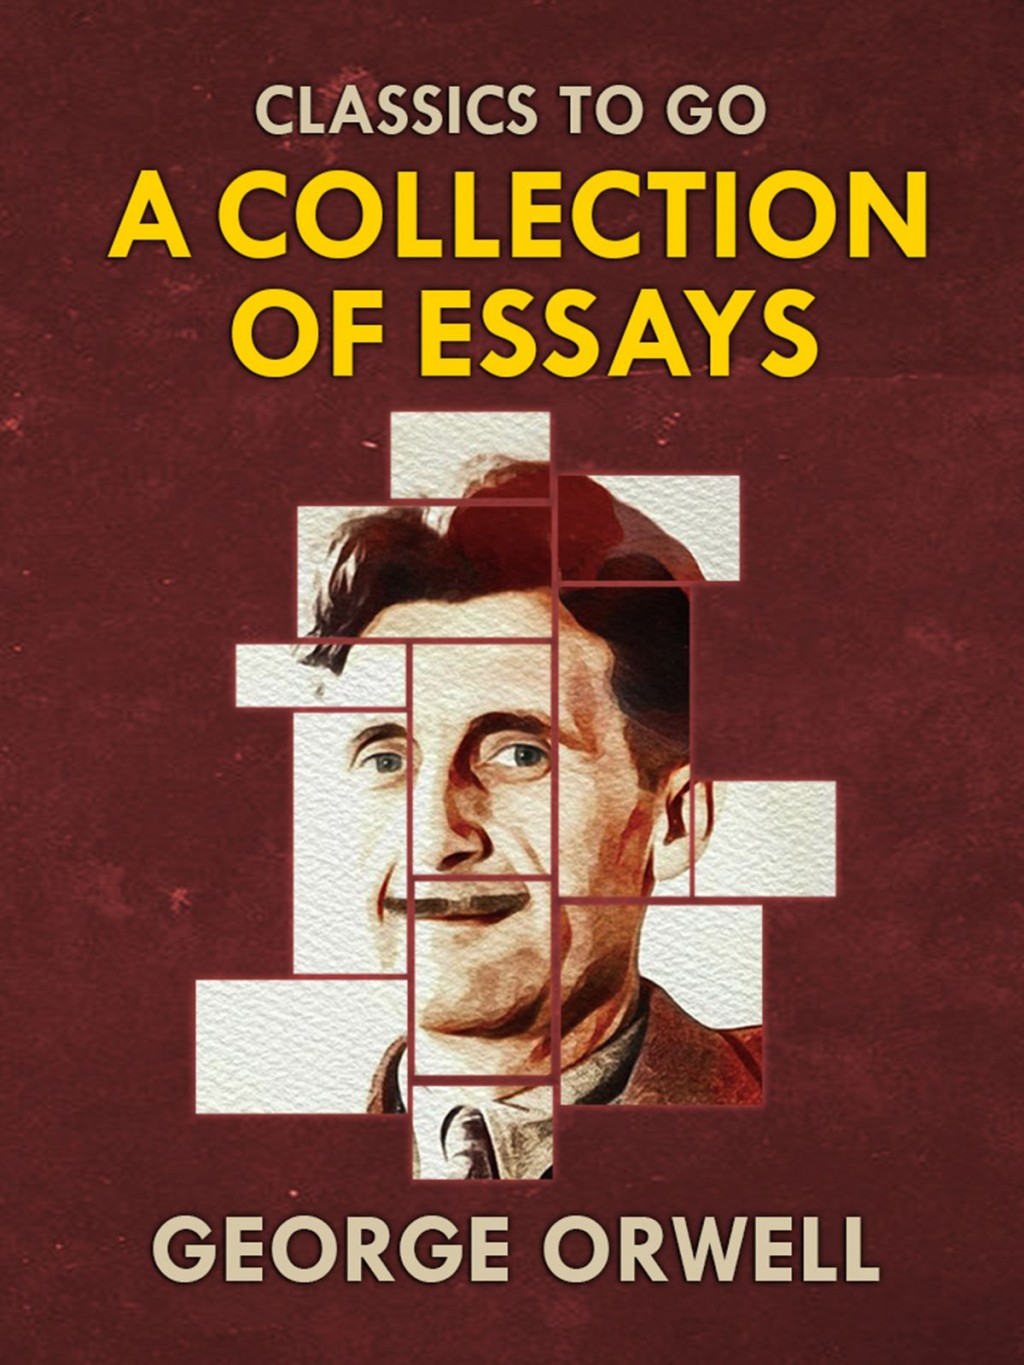 006 Essay Example Collections Of George Orwell Singular Essays Amazon Pdf Epub Large